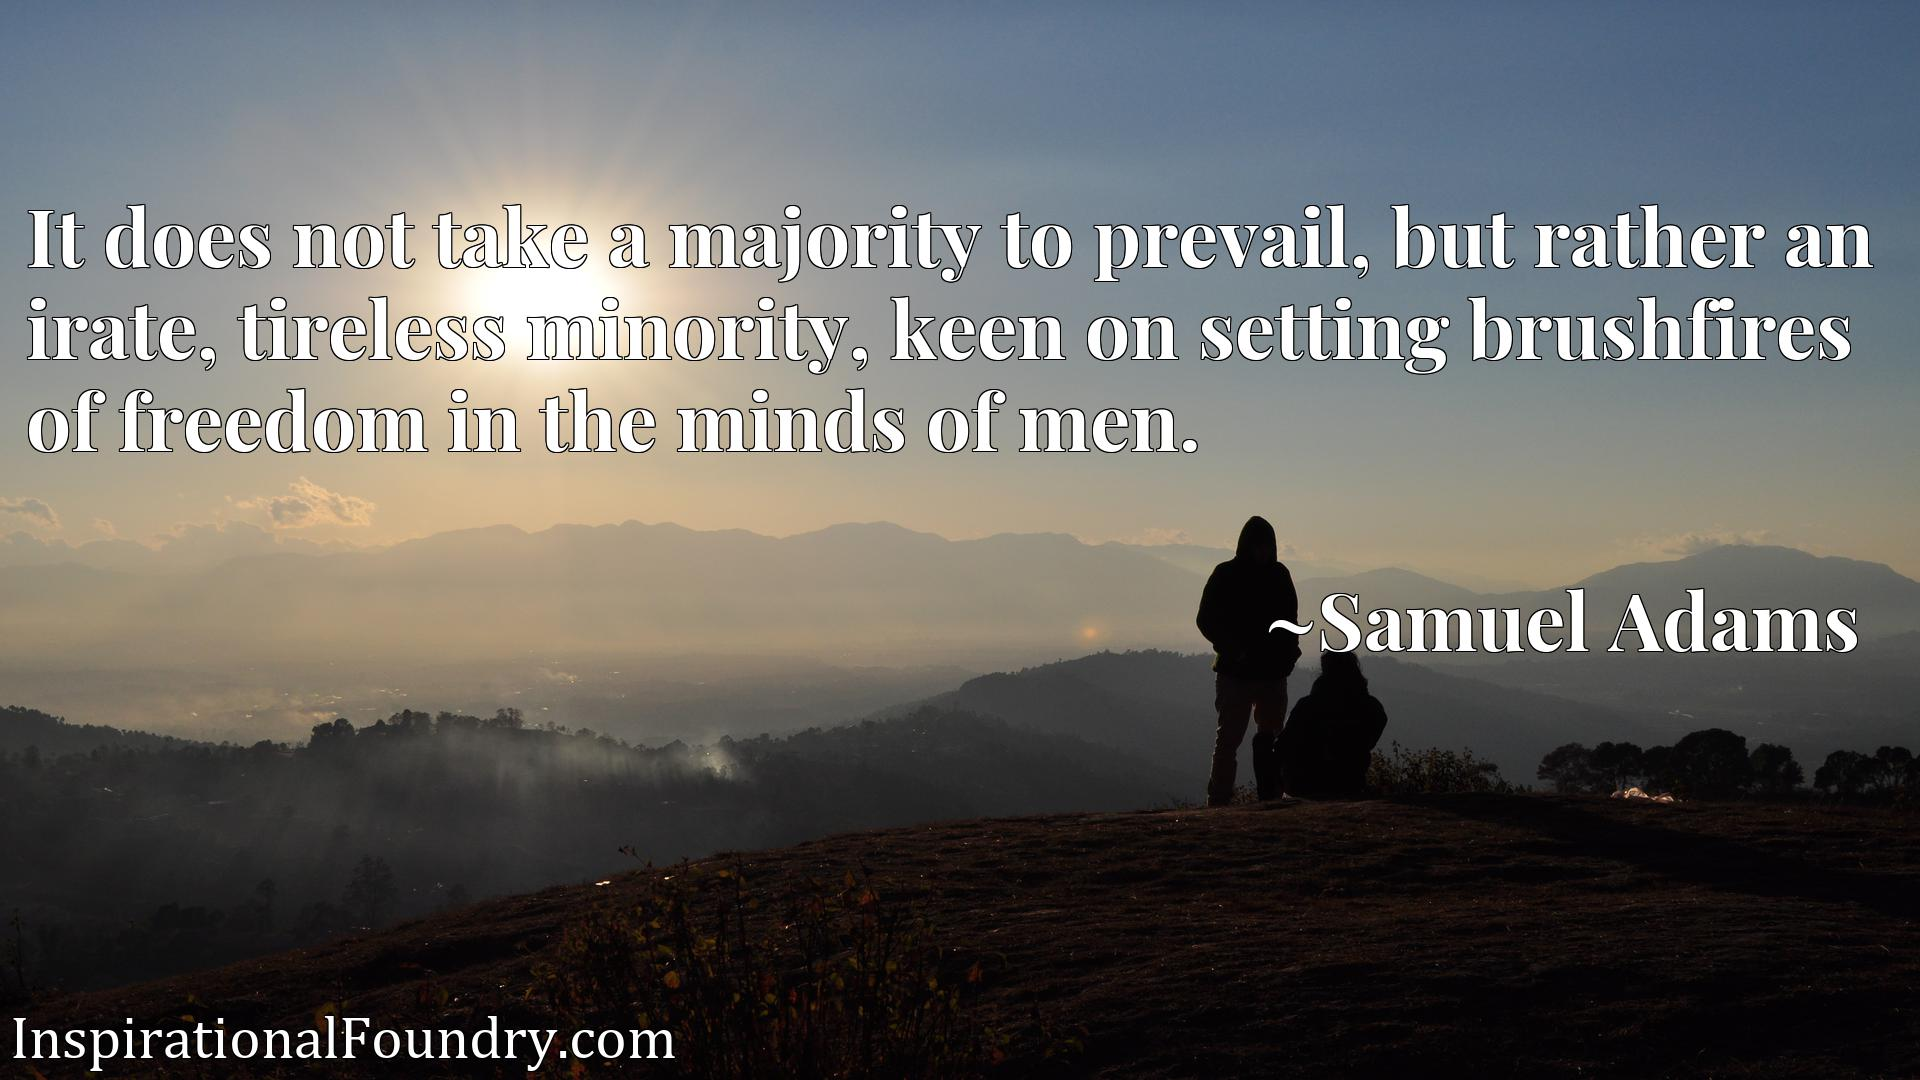 Quote Picture :It does not take a majority to prevail, but rather an irate, tireless minority, keen on setting brushfires of freedom in the minds of men.